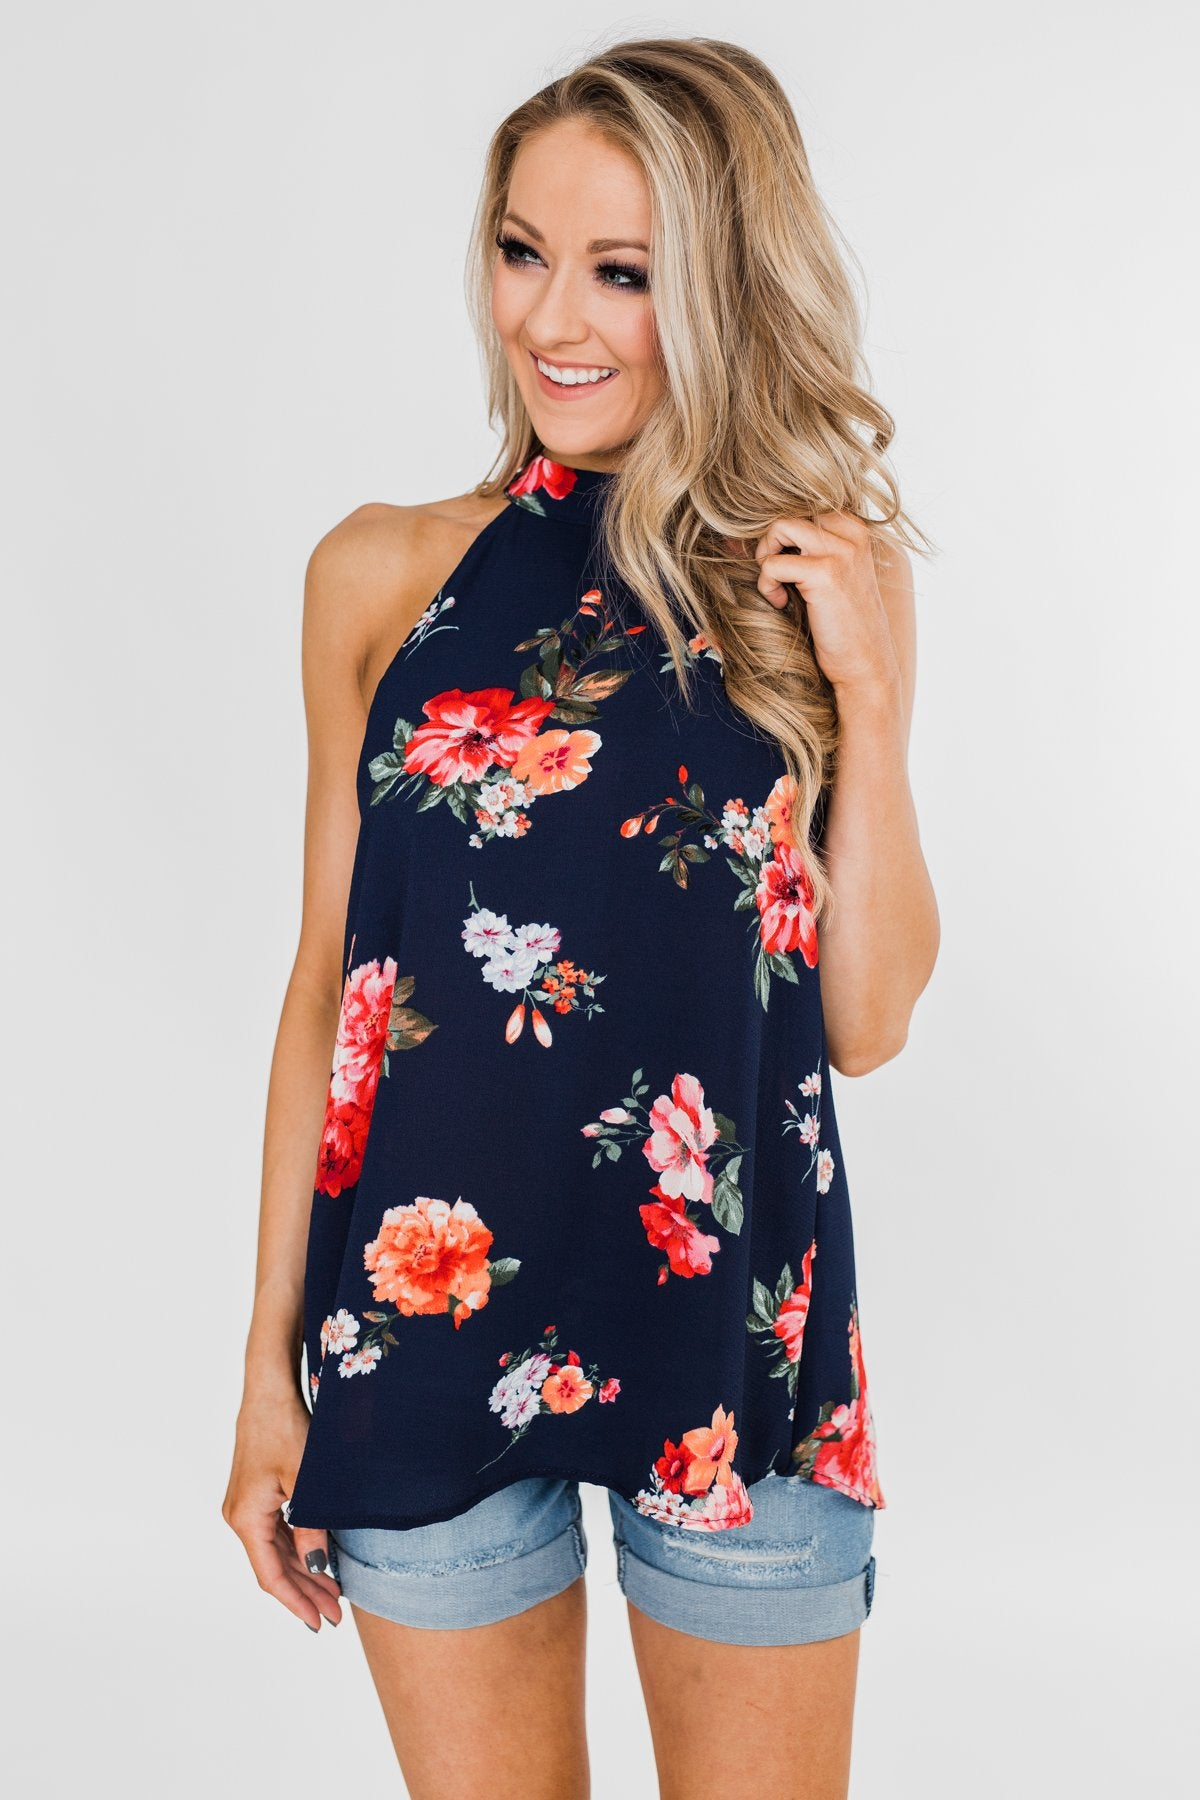 Flourish in Floral Halter Tank Top- Navy